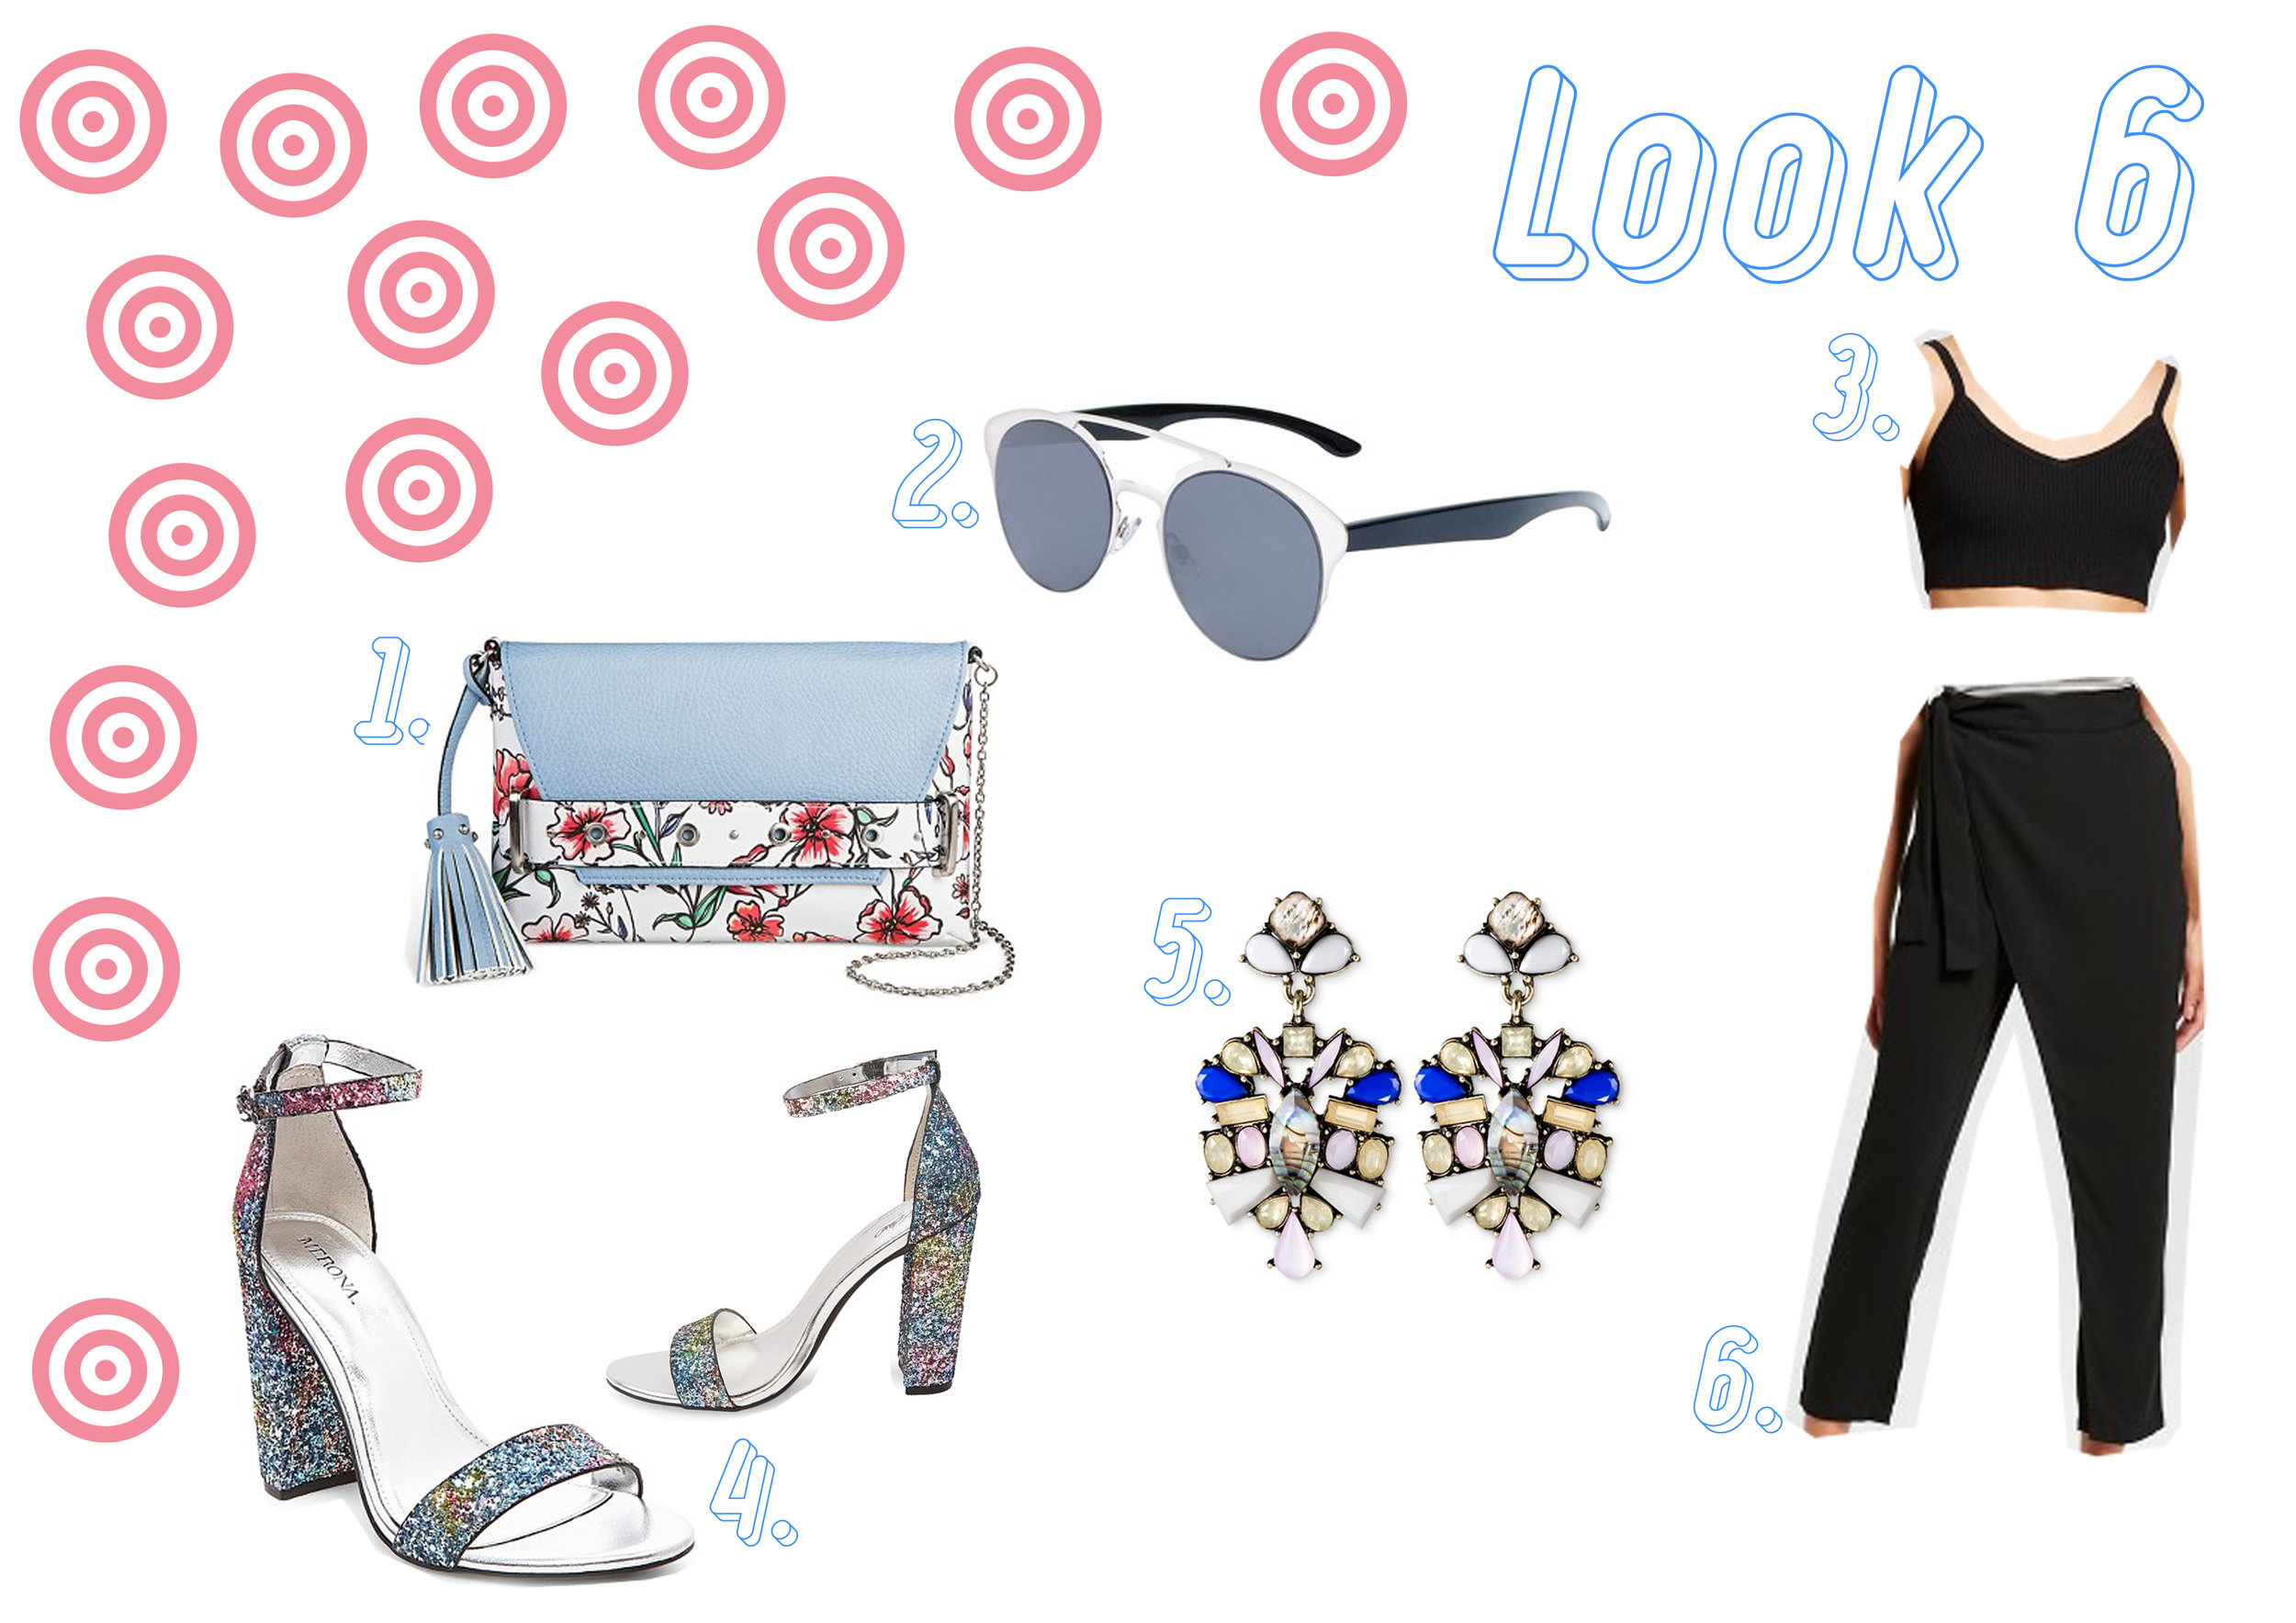 1. Floral handbag  here  - 2. Silver sunglasses  here  - 3. Crop top  here  - 4. Glitter shoes  here  - 5. Earrings  here  - 6. Black trousers  here